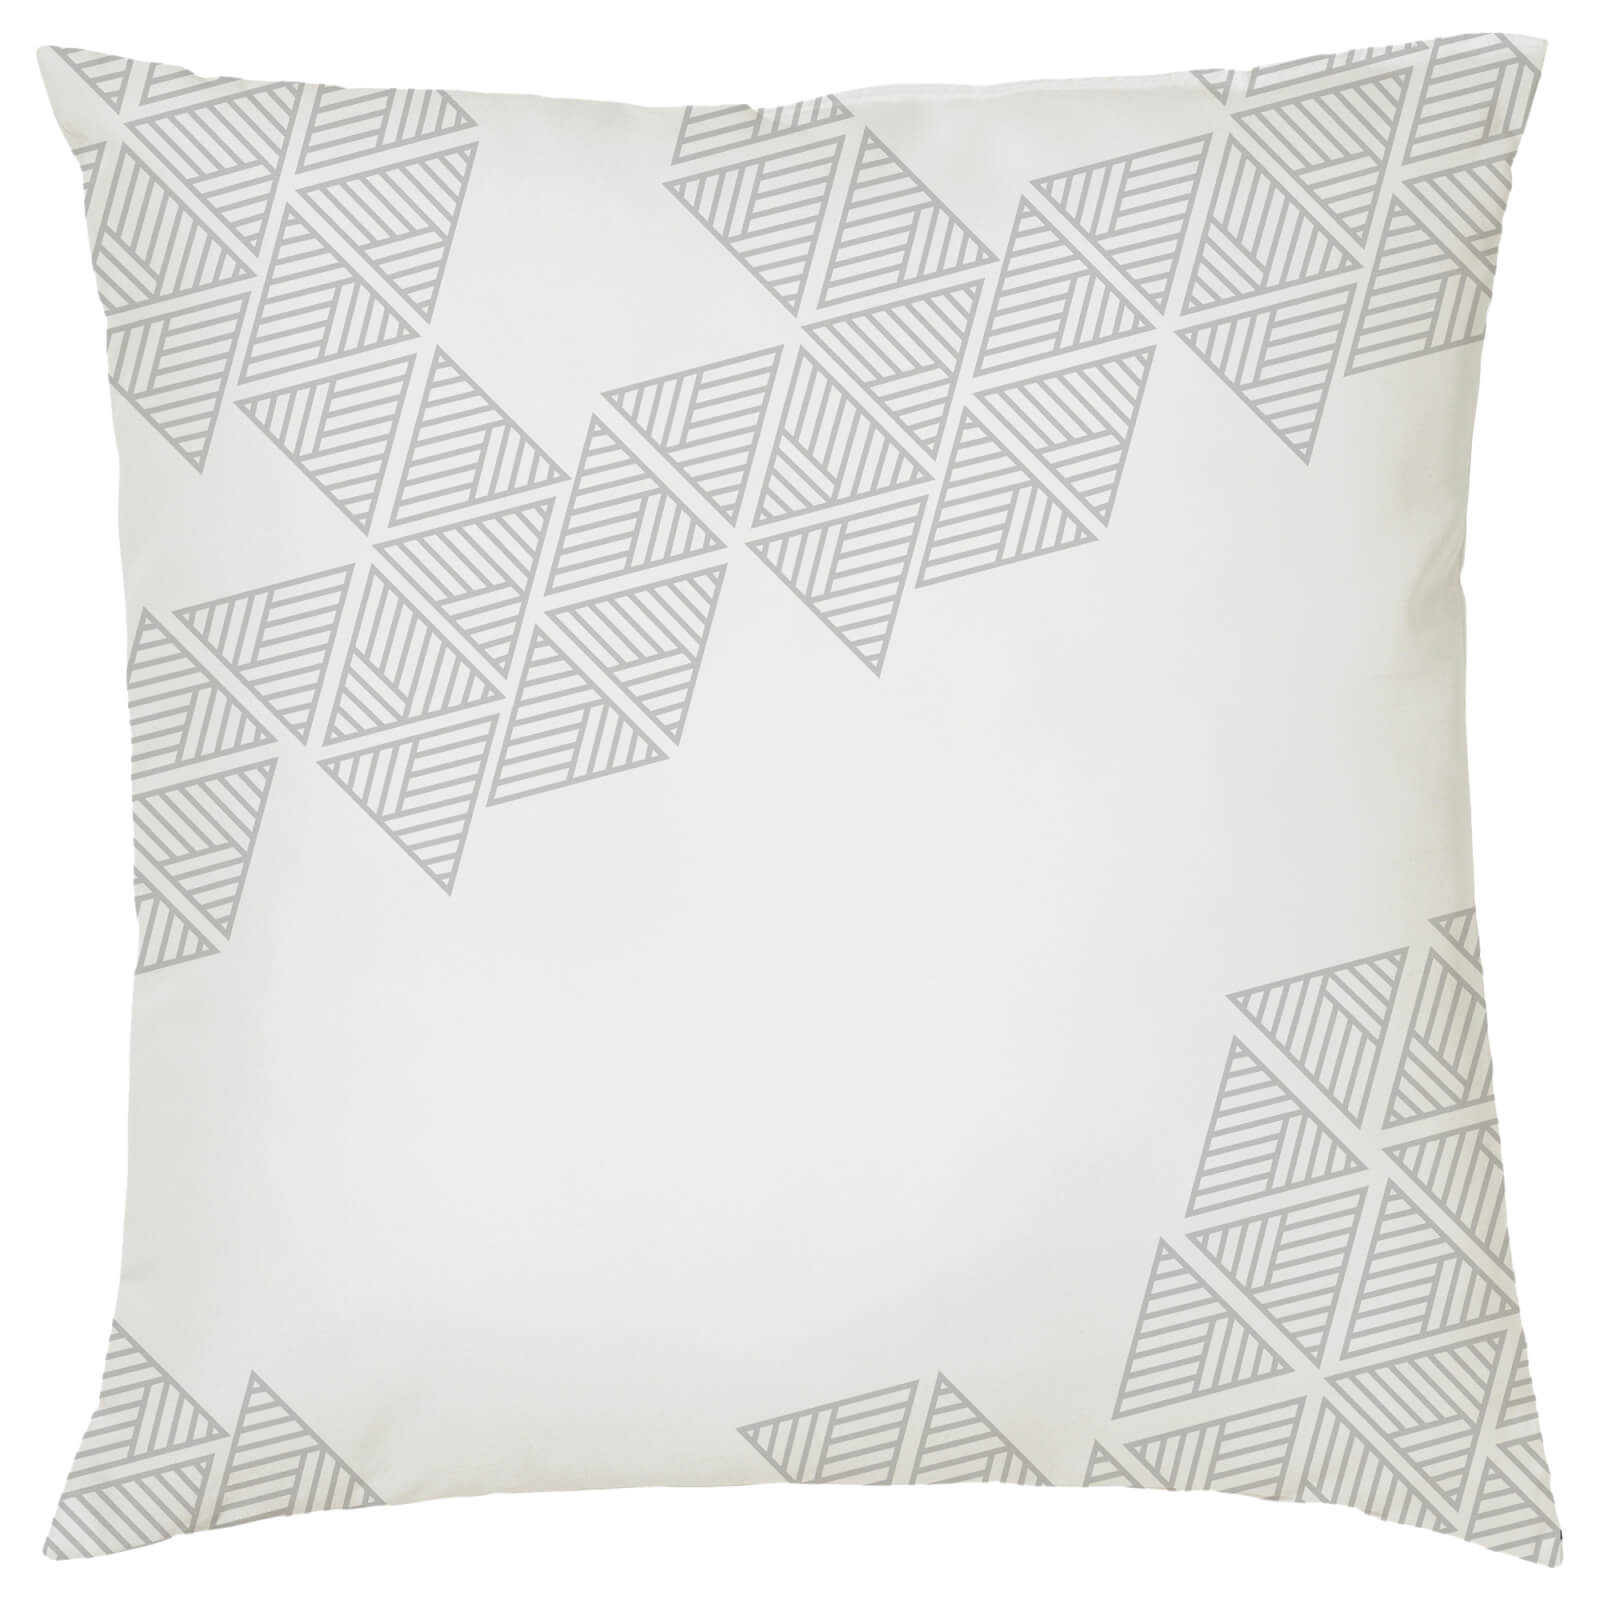 Geometric Triangle Print Cushion - White